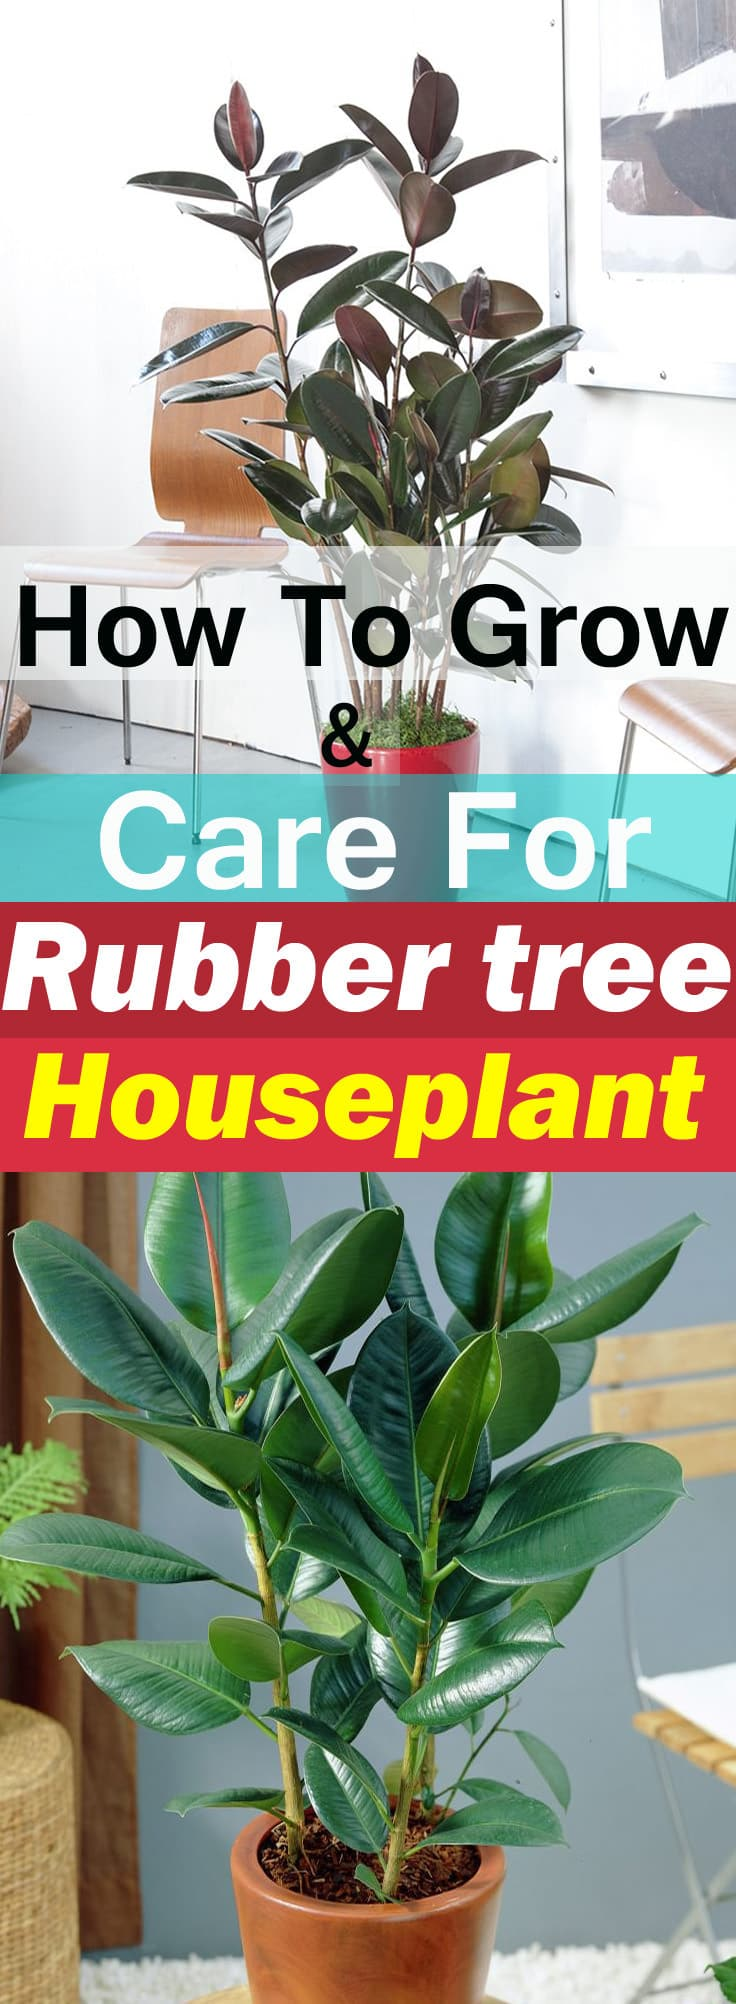 rubber tree plant care as a houseplant is easy if you keep it in a